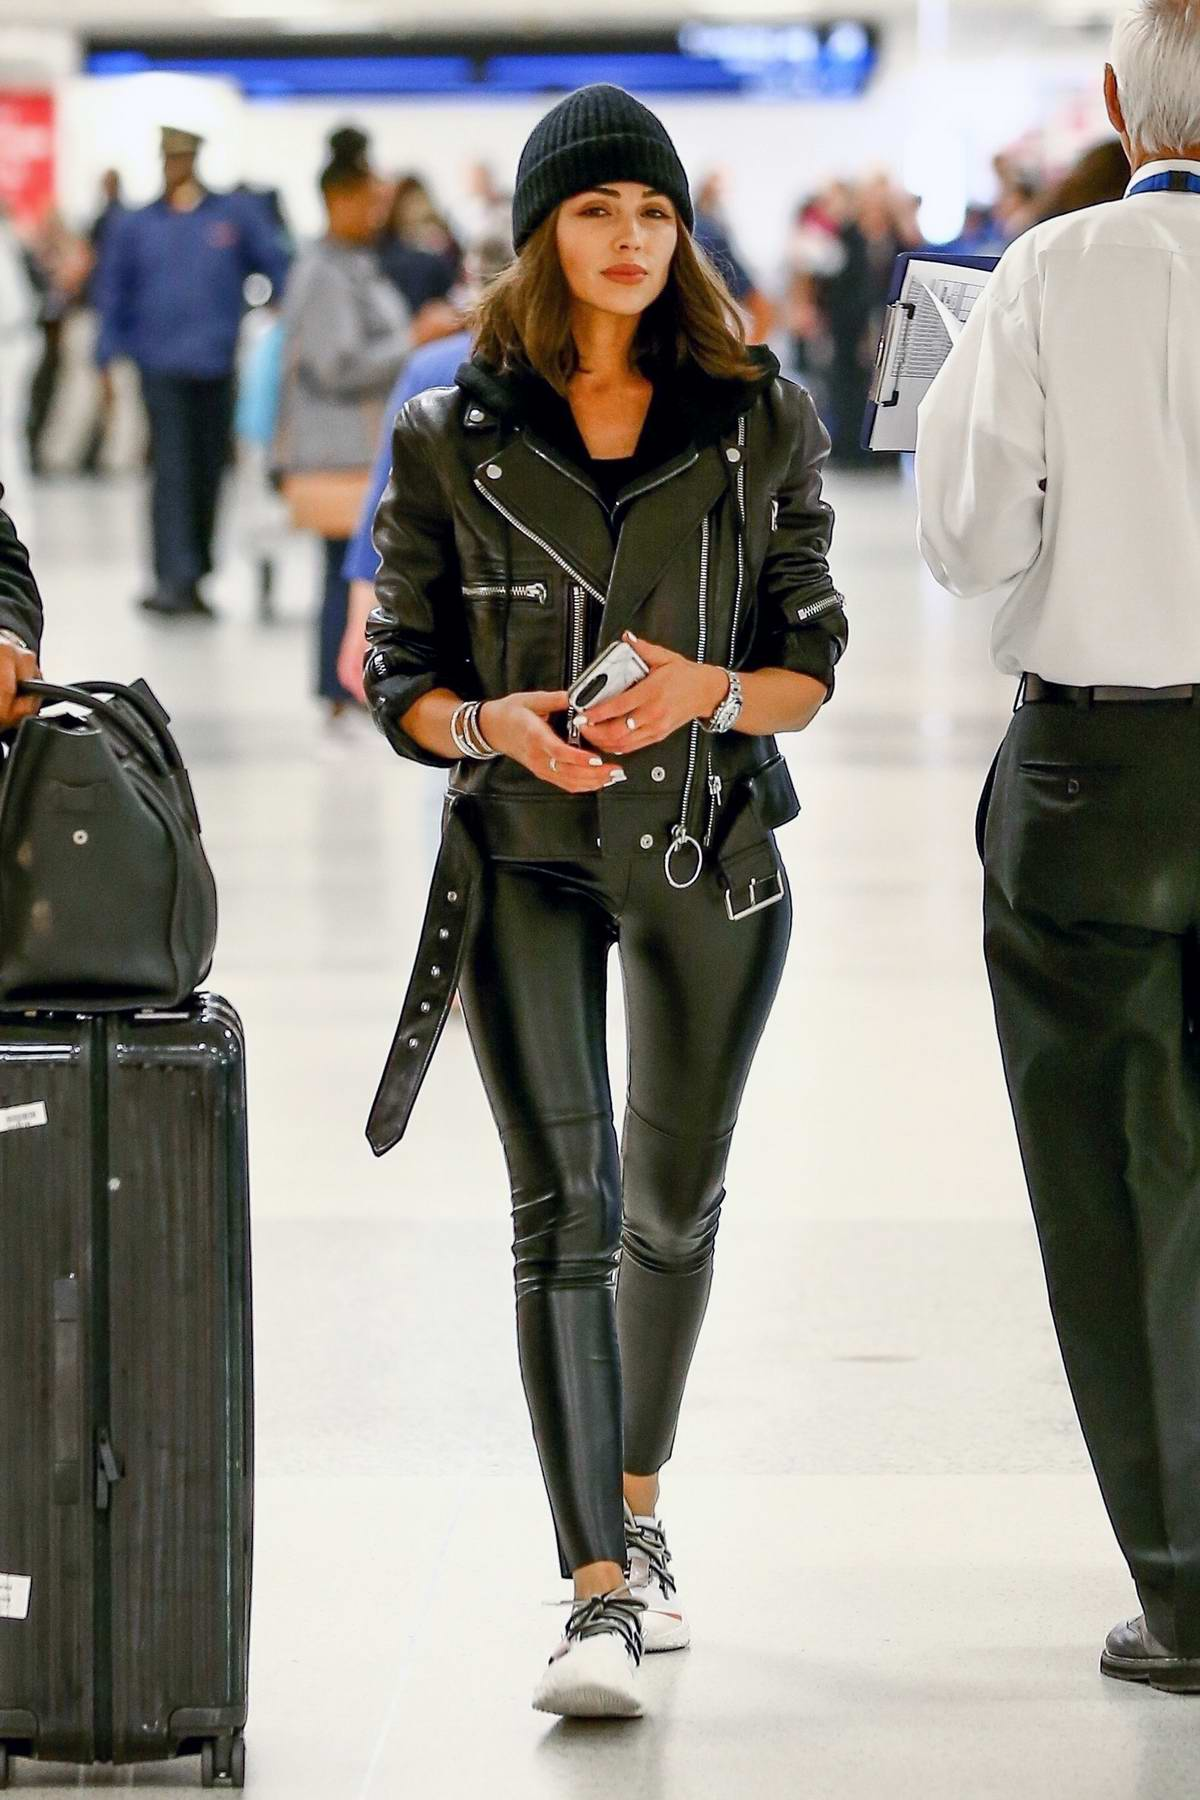 Olivia Culpo looks chic in a black leather jacket paired with matching leather tights and white sneakers as she arrives at the Miami International Airport, Florida